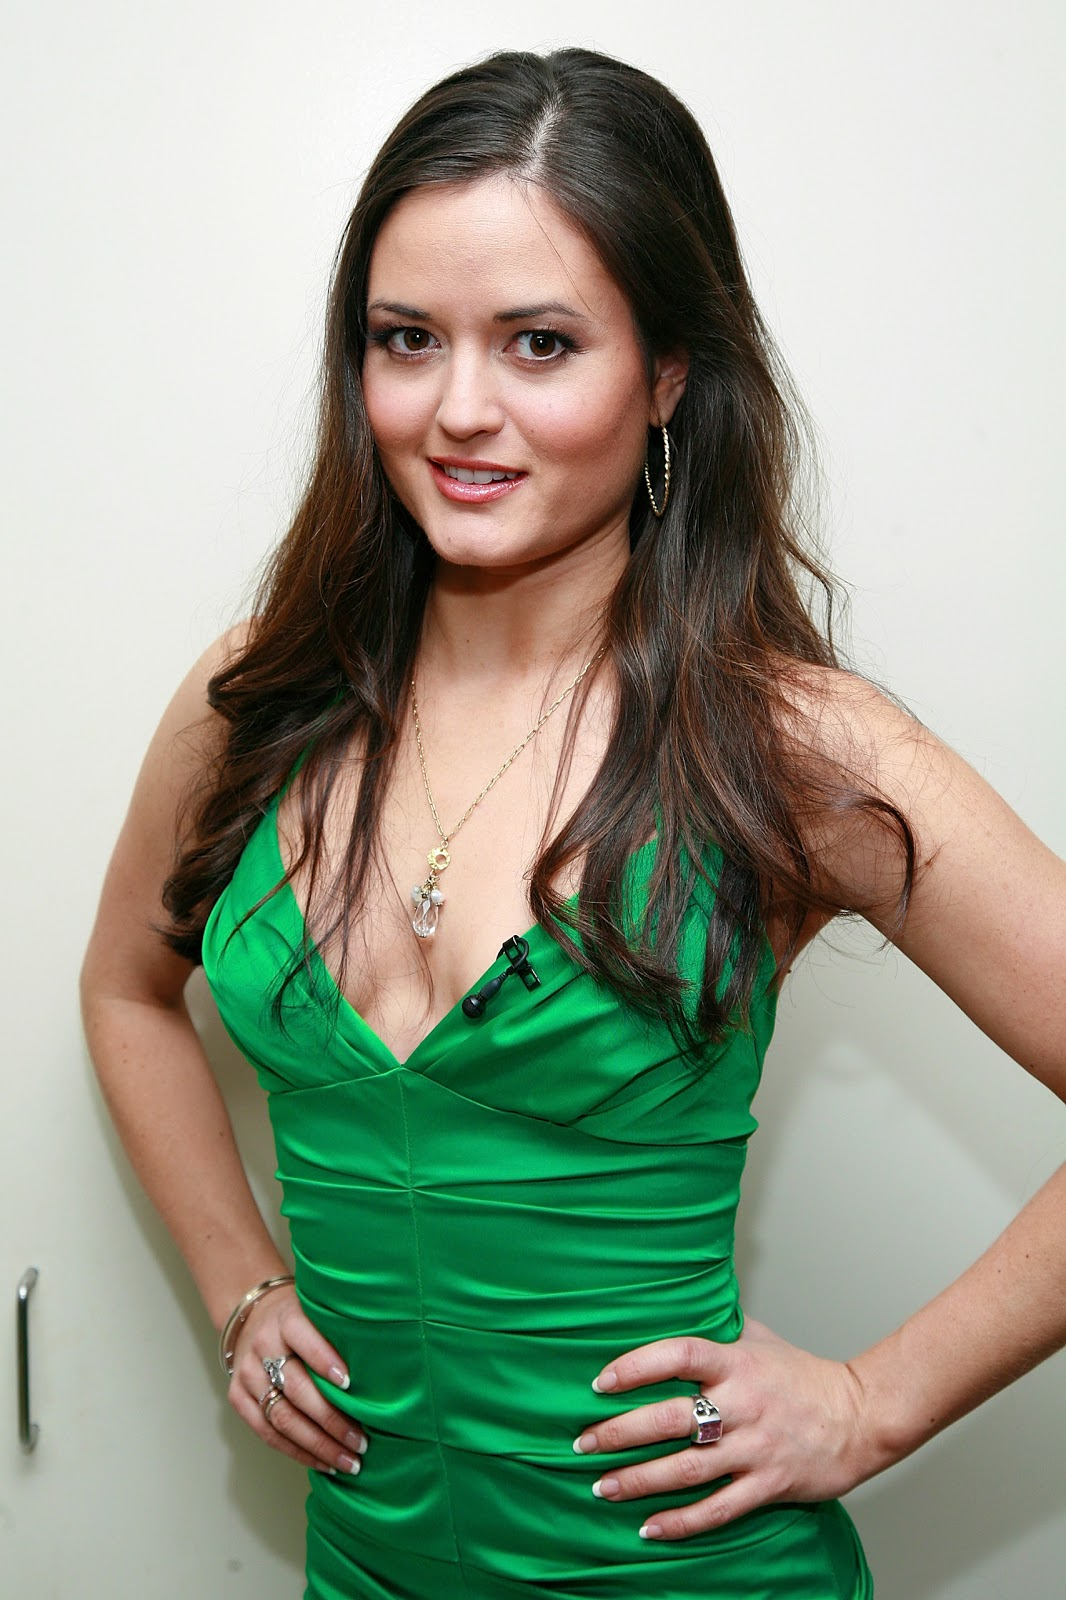 Danica Mckellar Nude Fakes Ele what ever happened to….: winnie from the wonder years actress